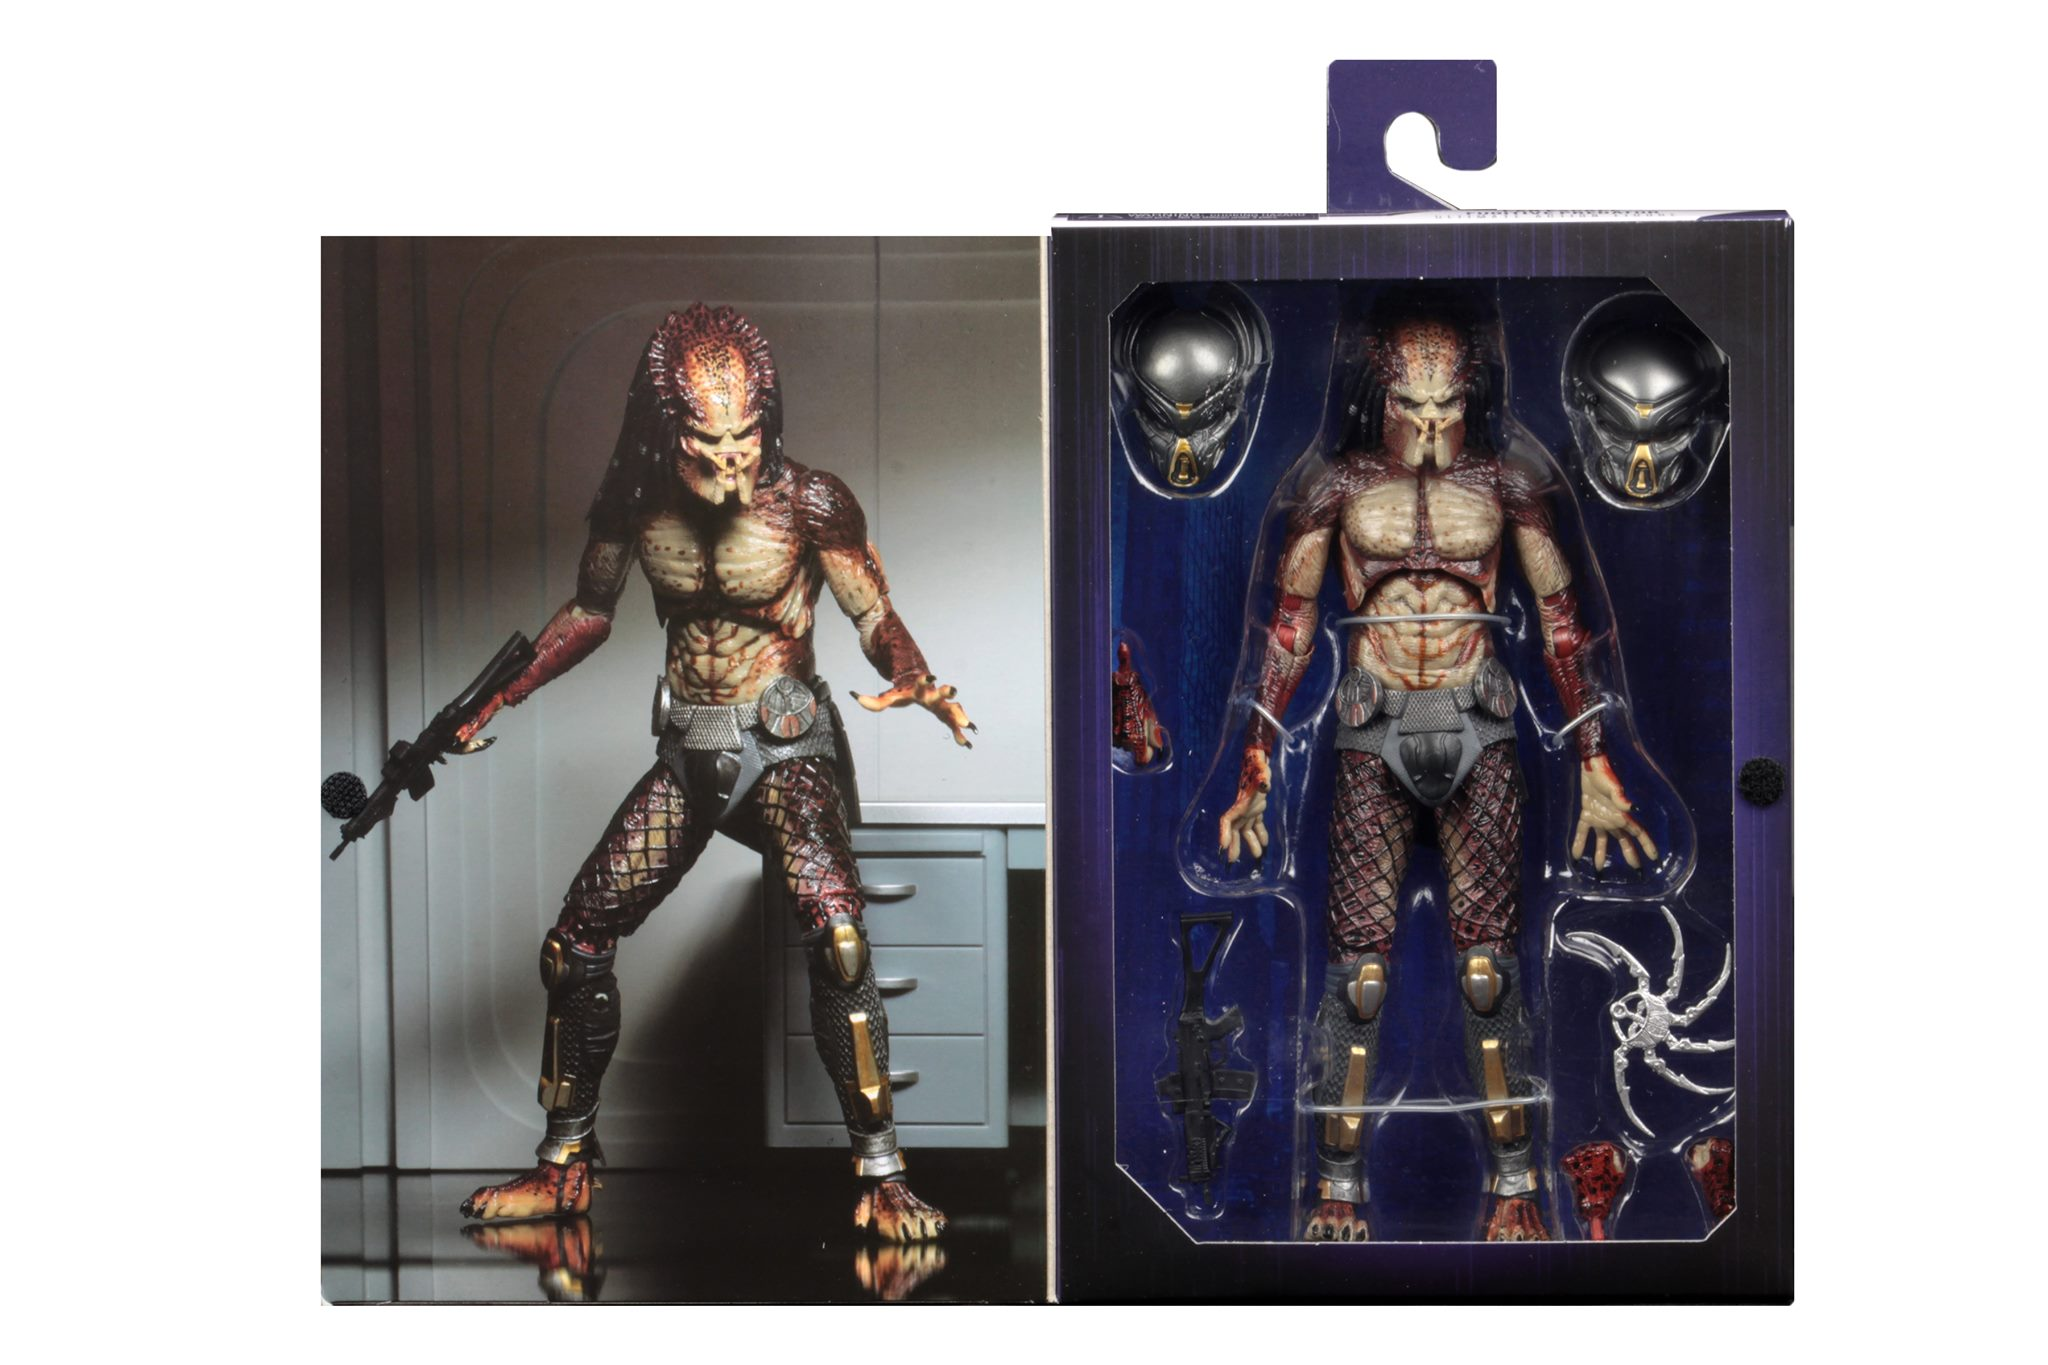 NECA Lab Escape Fugitive Predator In-Packaging and Available